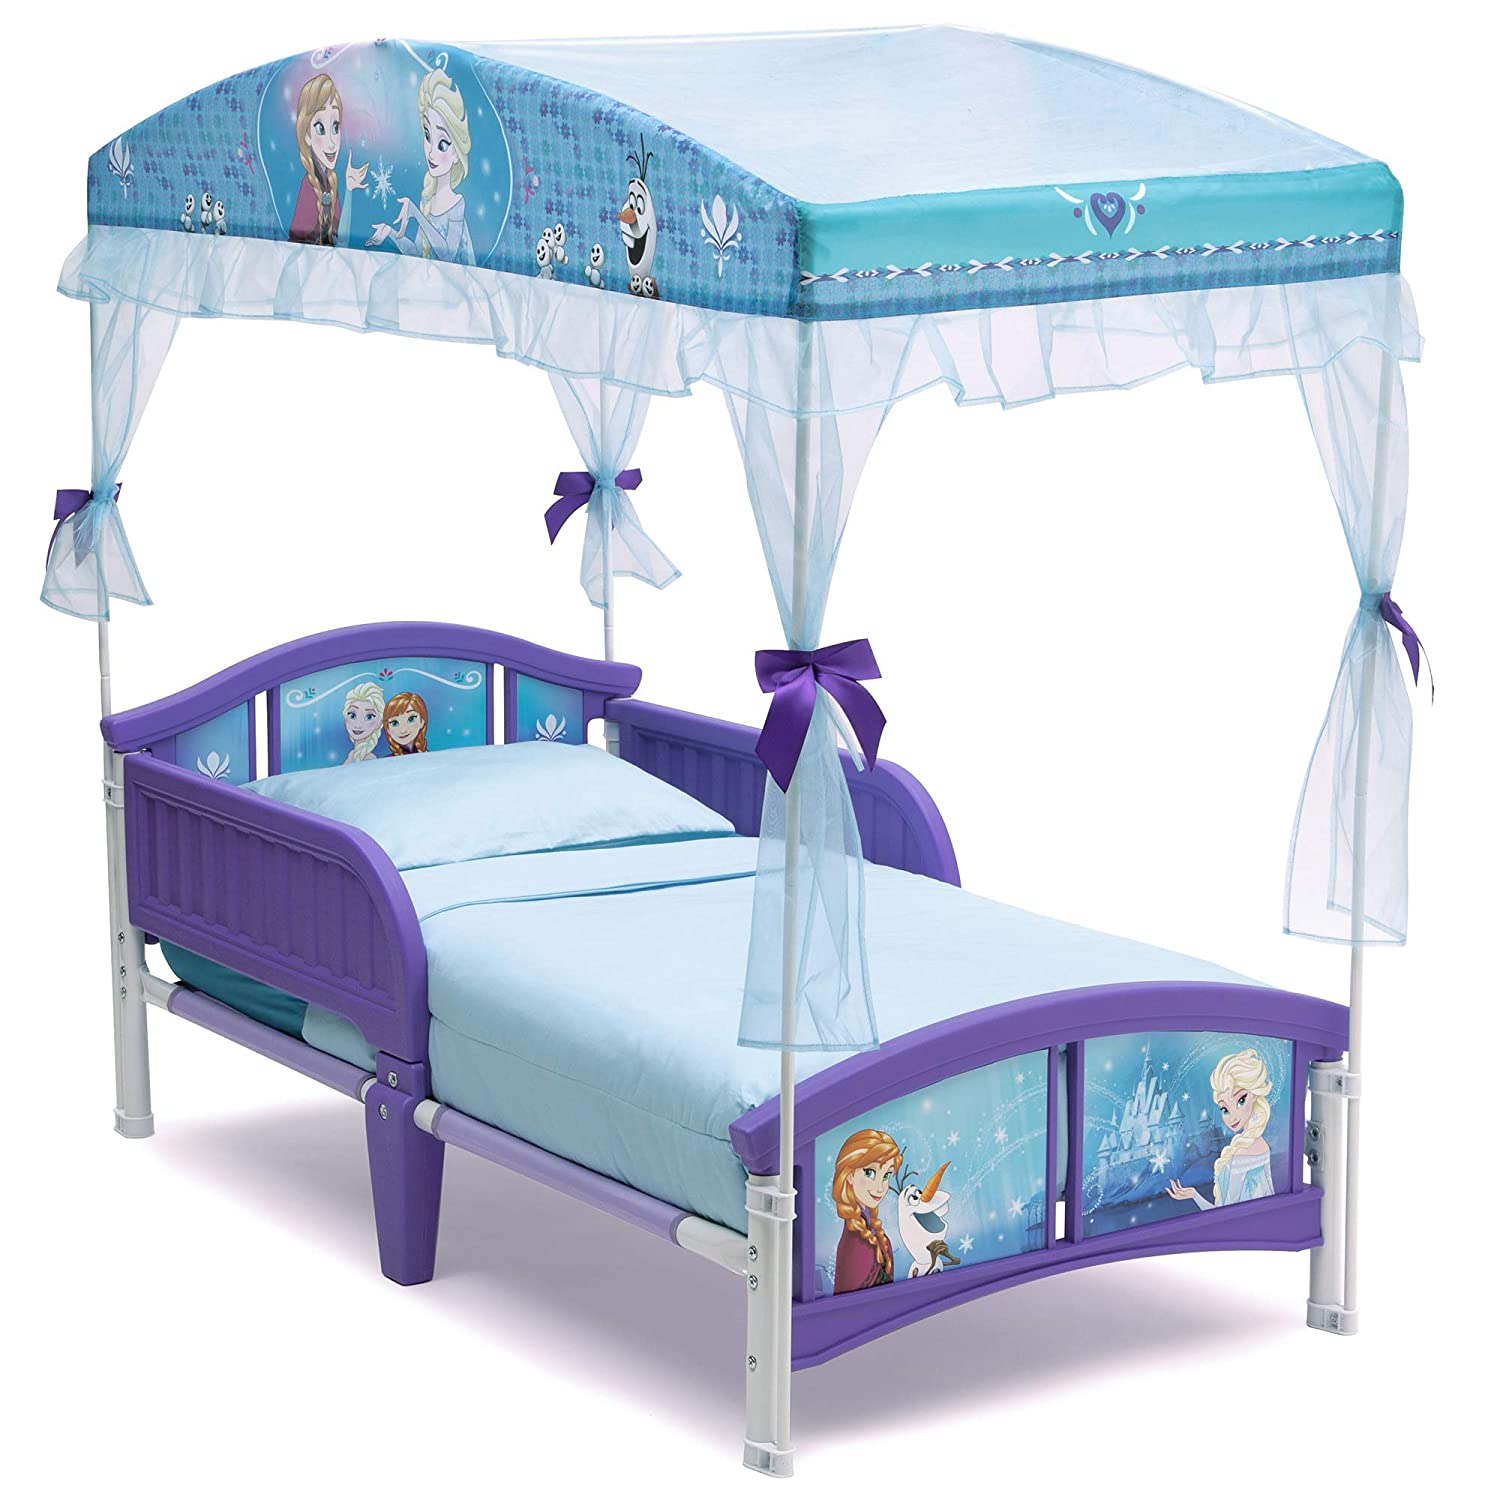 - Amazon.com : Delta Children Canopy Toddler Bed, Disney Frozen : Baby